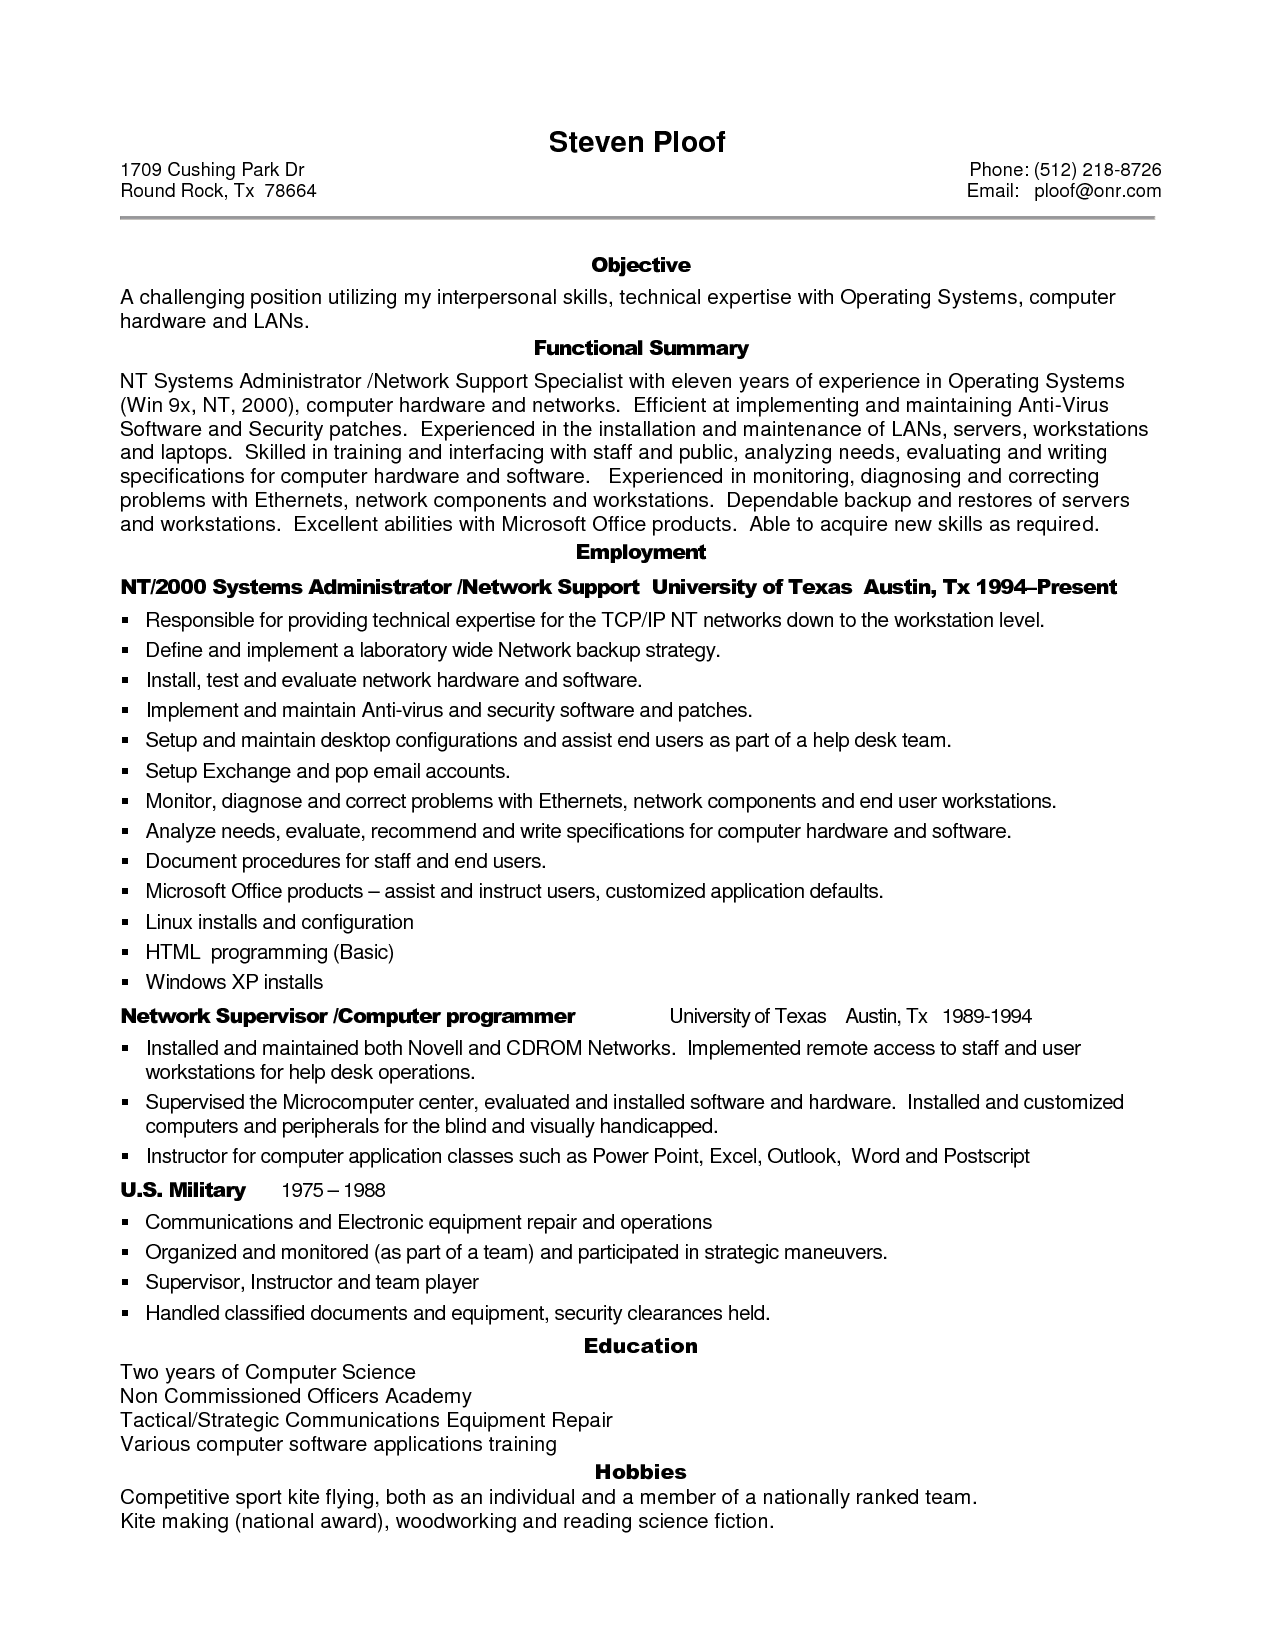 Sample Resume For Experienced It Professional Sample Resume For Experienced It  Professional, Resume Tips For  It Professional Resume Sample